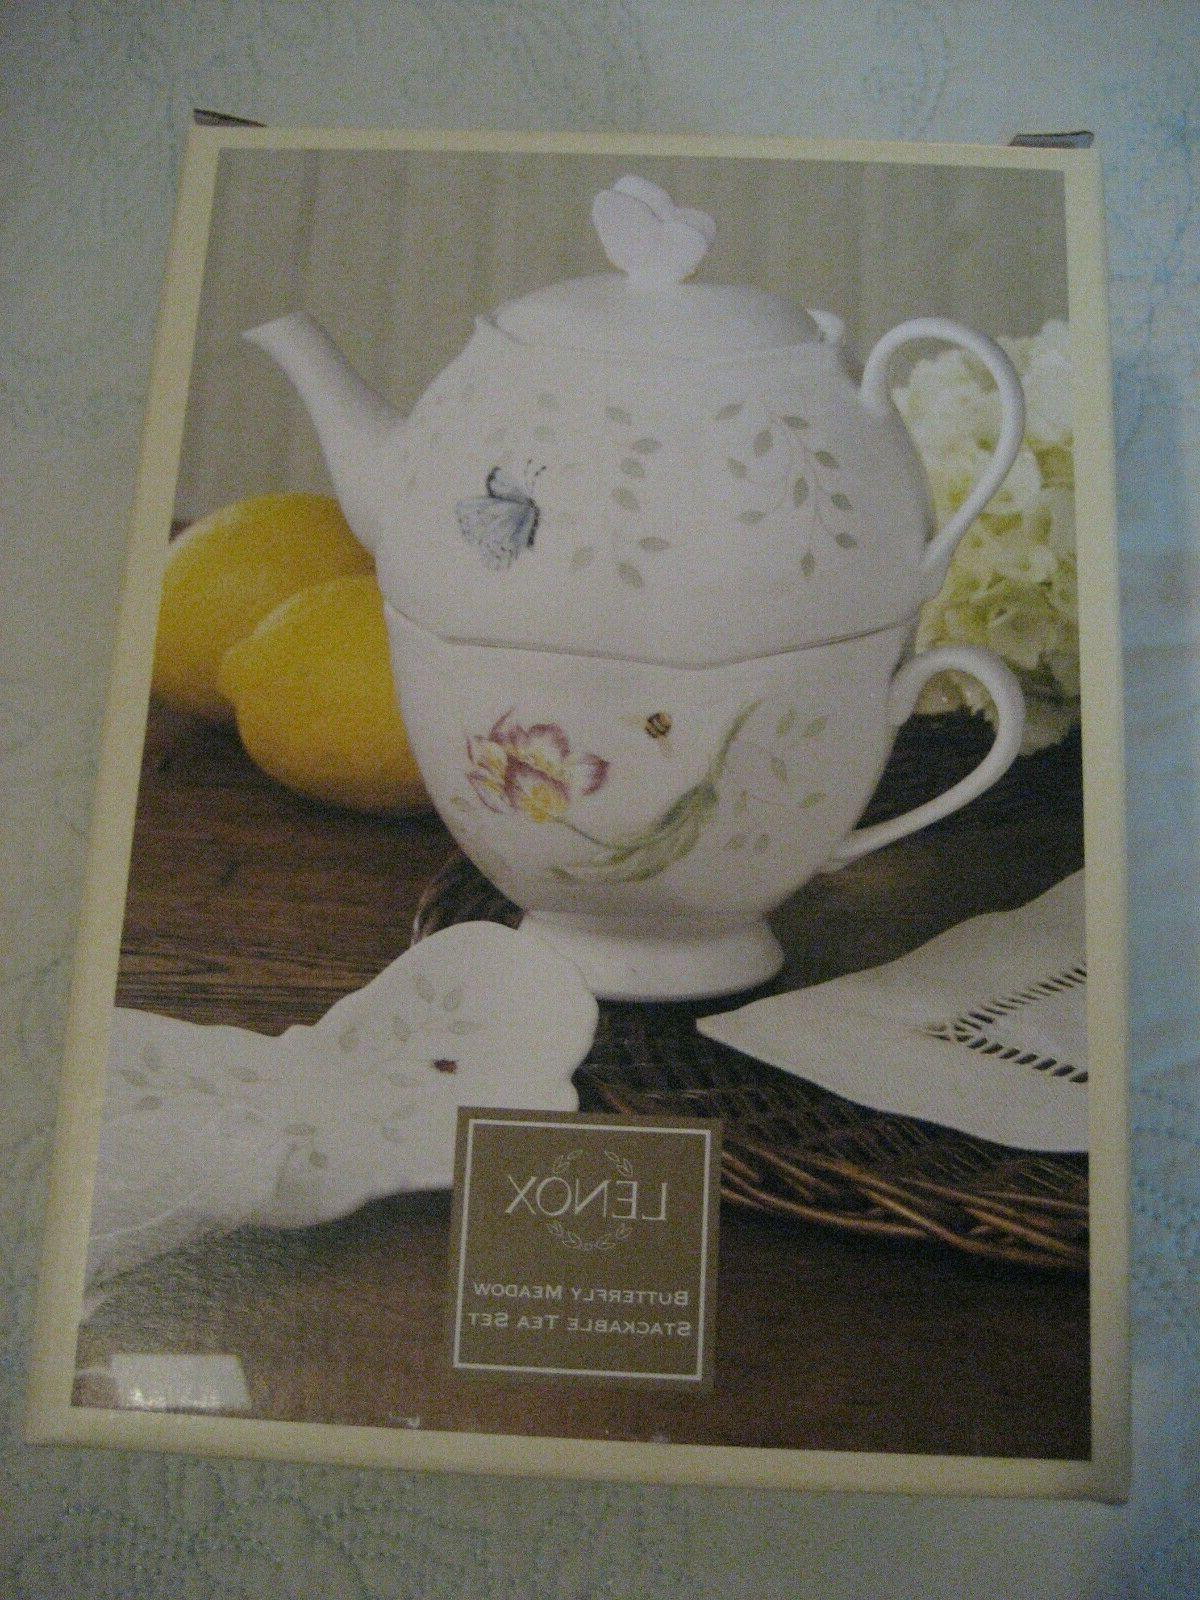 butterfly meadow stackable tea set with bag